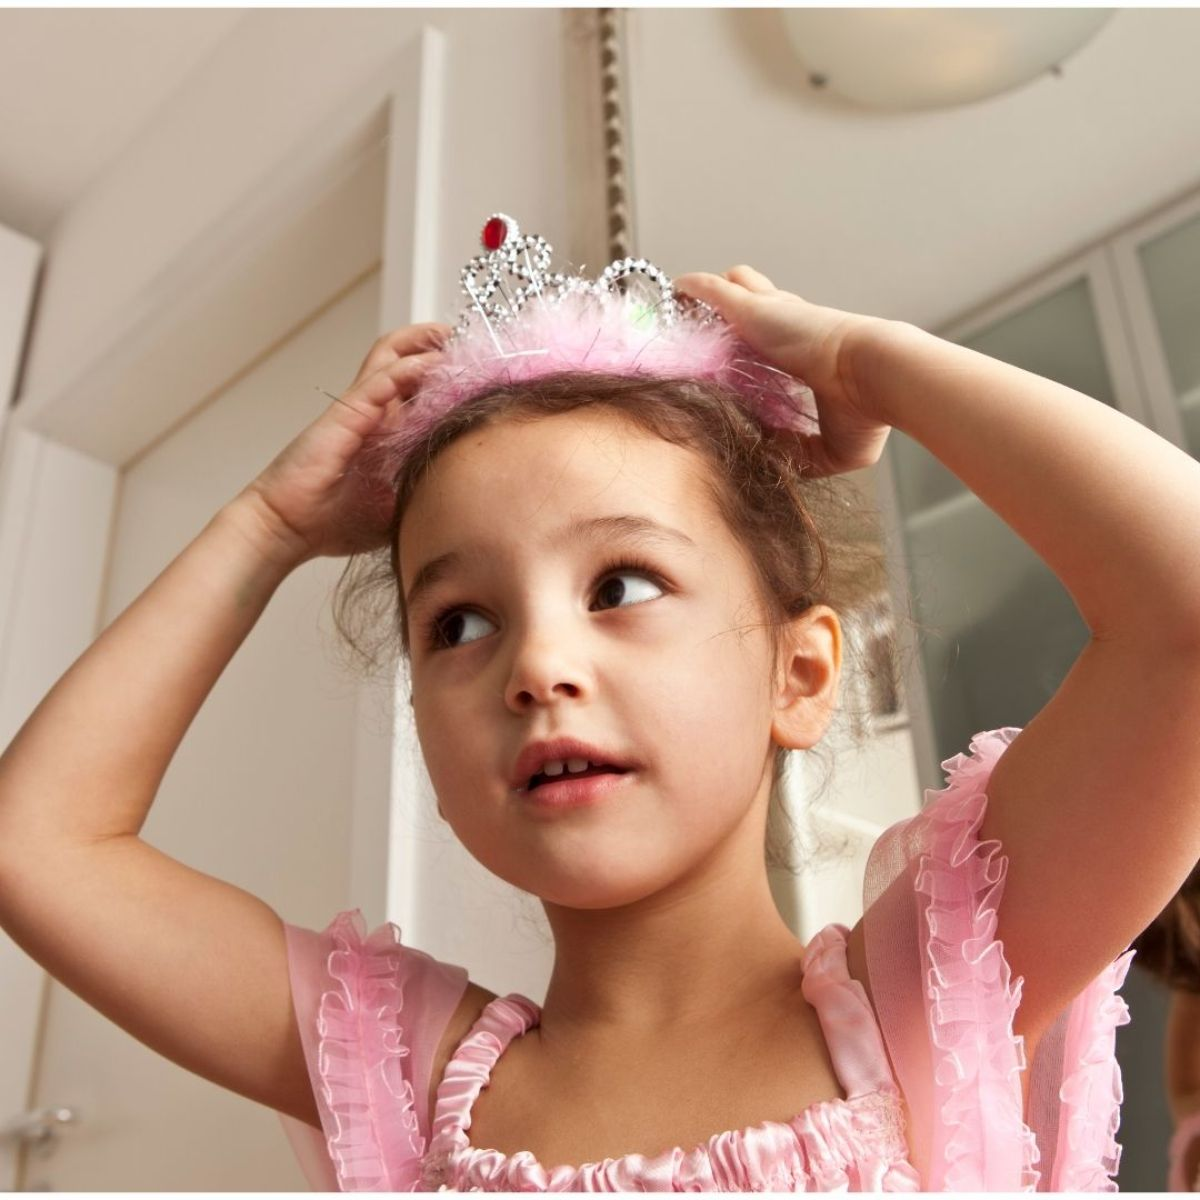 a girl in a pink dress is placing a tiara on her head